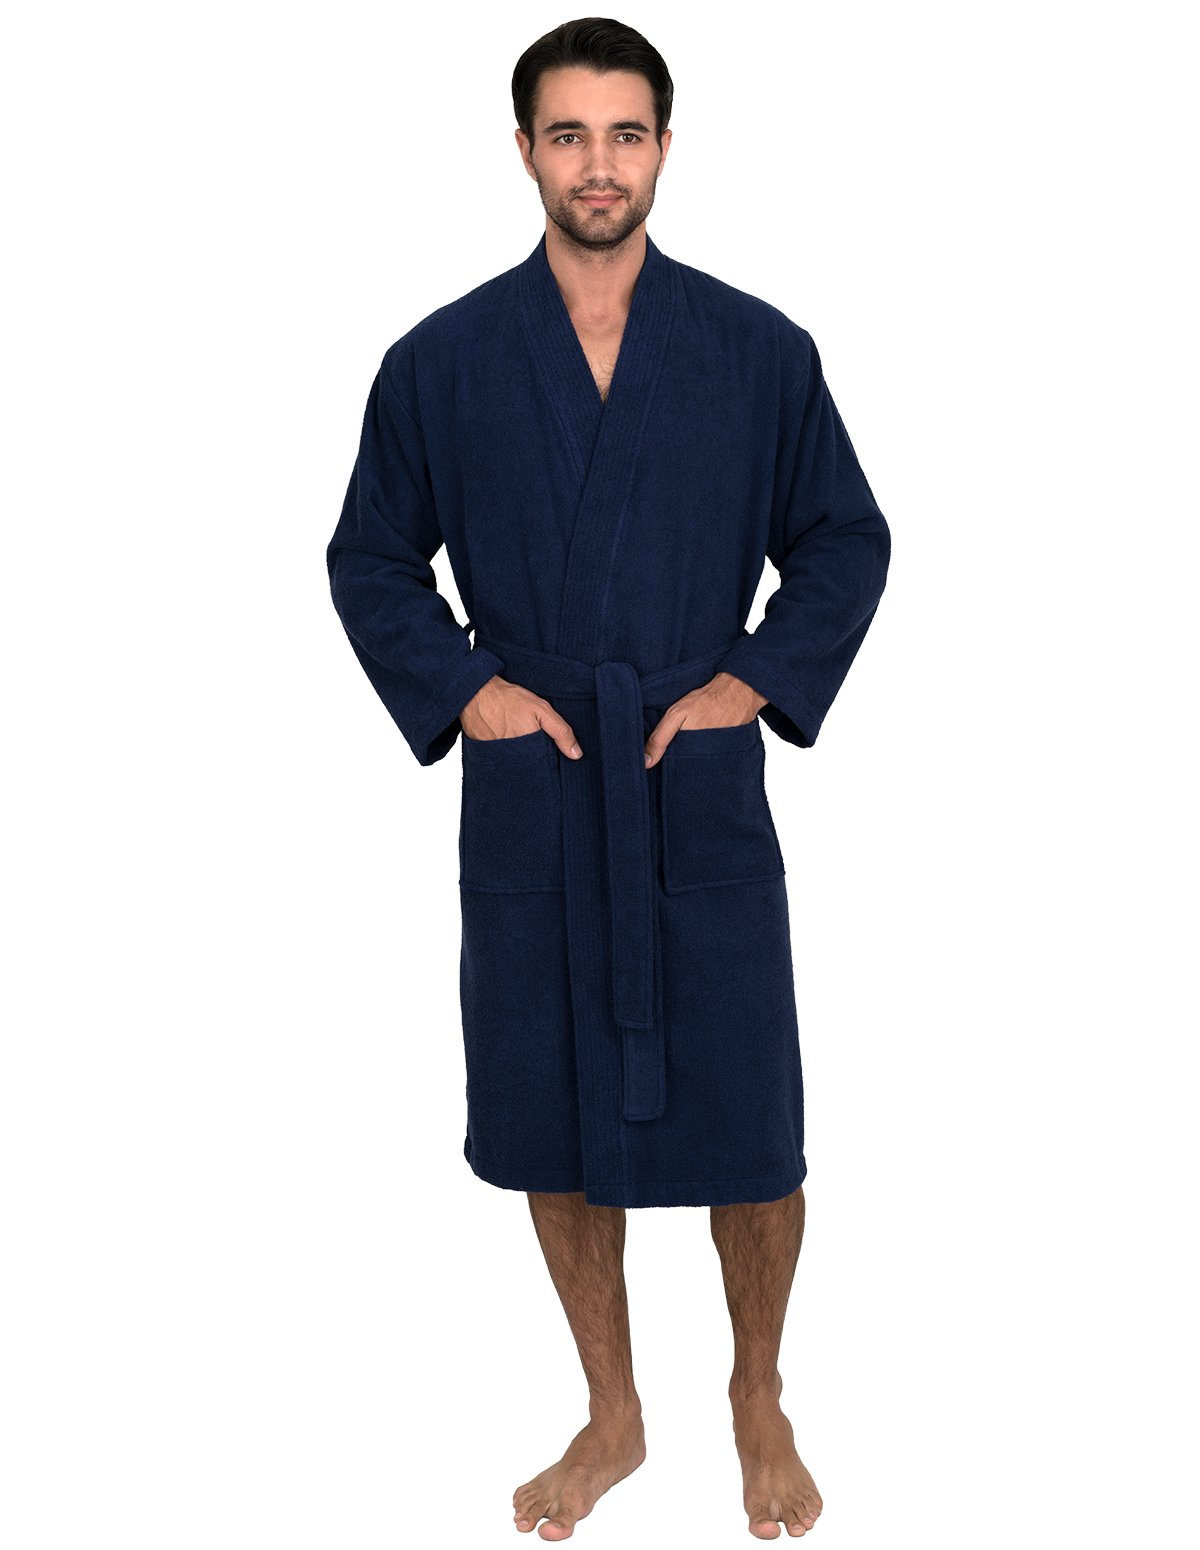 TowelSelections Men's Robe, Turkish Cotton Terry Kimono Bathrobe X-Large/XX-Large Patriot Blue